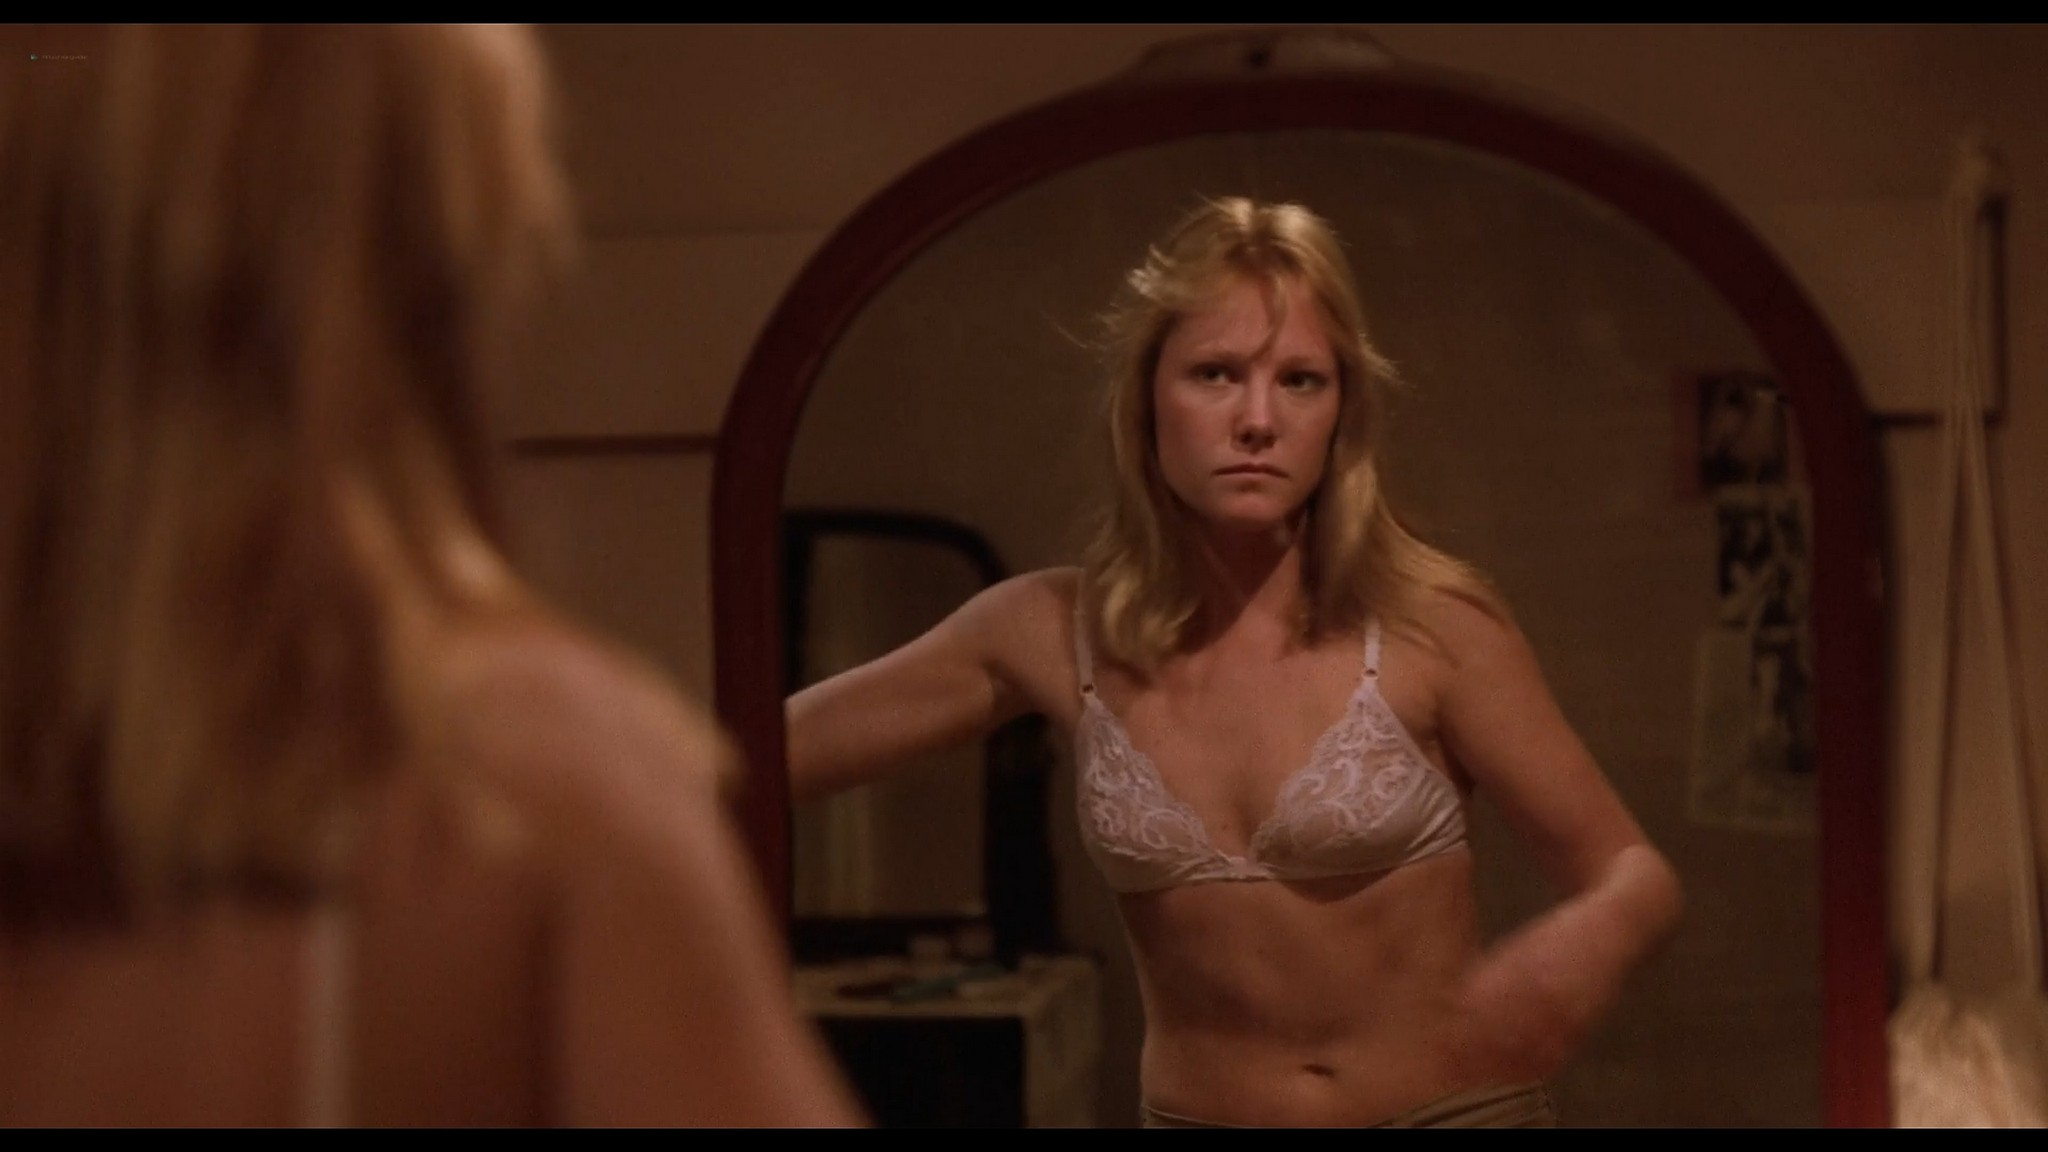 Kirsten Baker nude full frontal Amy Steel and others sexy Friday the 13th Part 2 1981 1080p BluRay 3